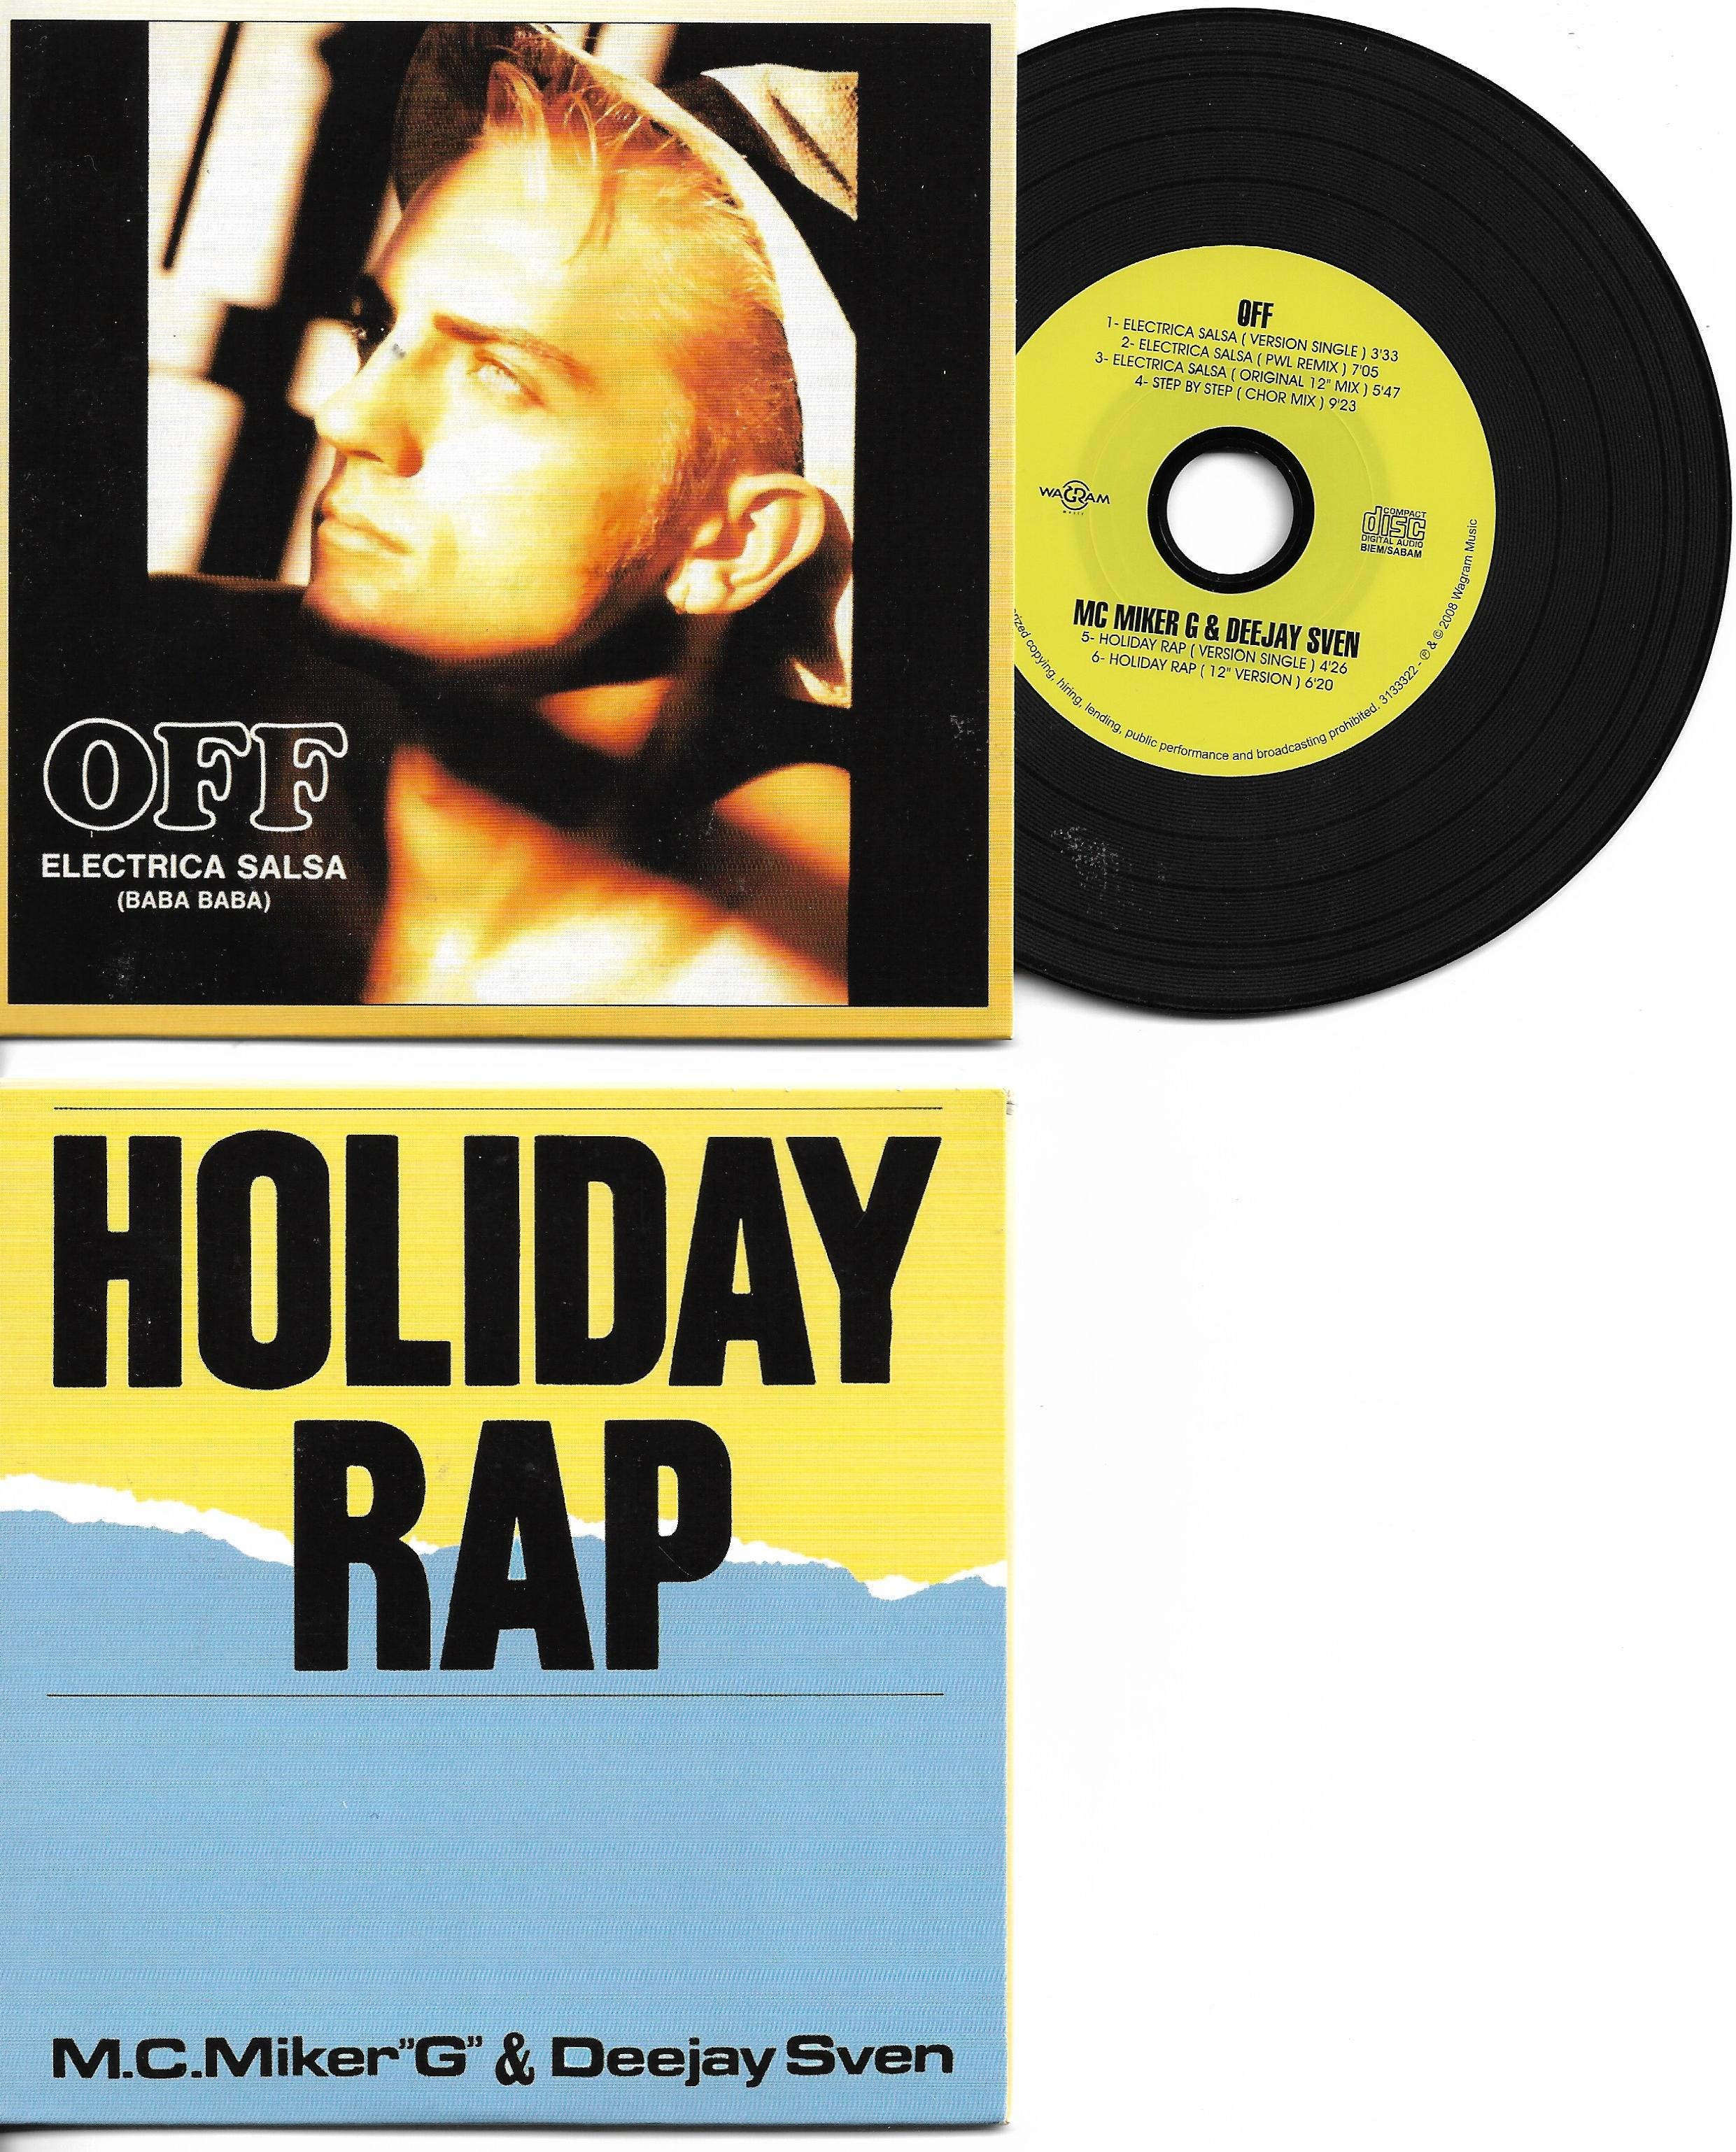 OFF - M.C. MIKER ''G'' & DEEJAY SVEN ( MADONNA ) - Electrica Salsa - Holiday Rap - Special reissue 6-TRACK REMIXES CARD SLEEVE - CD single